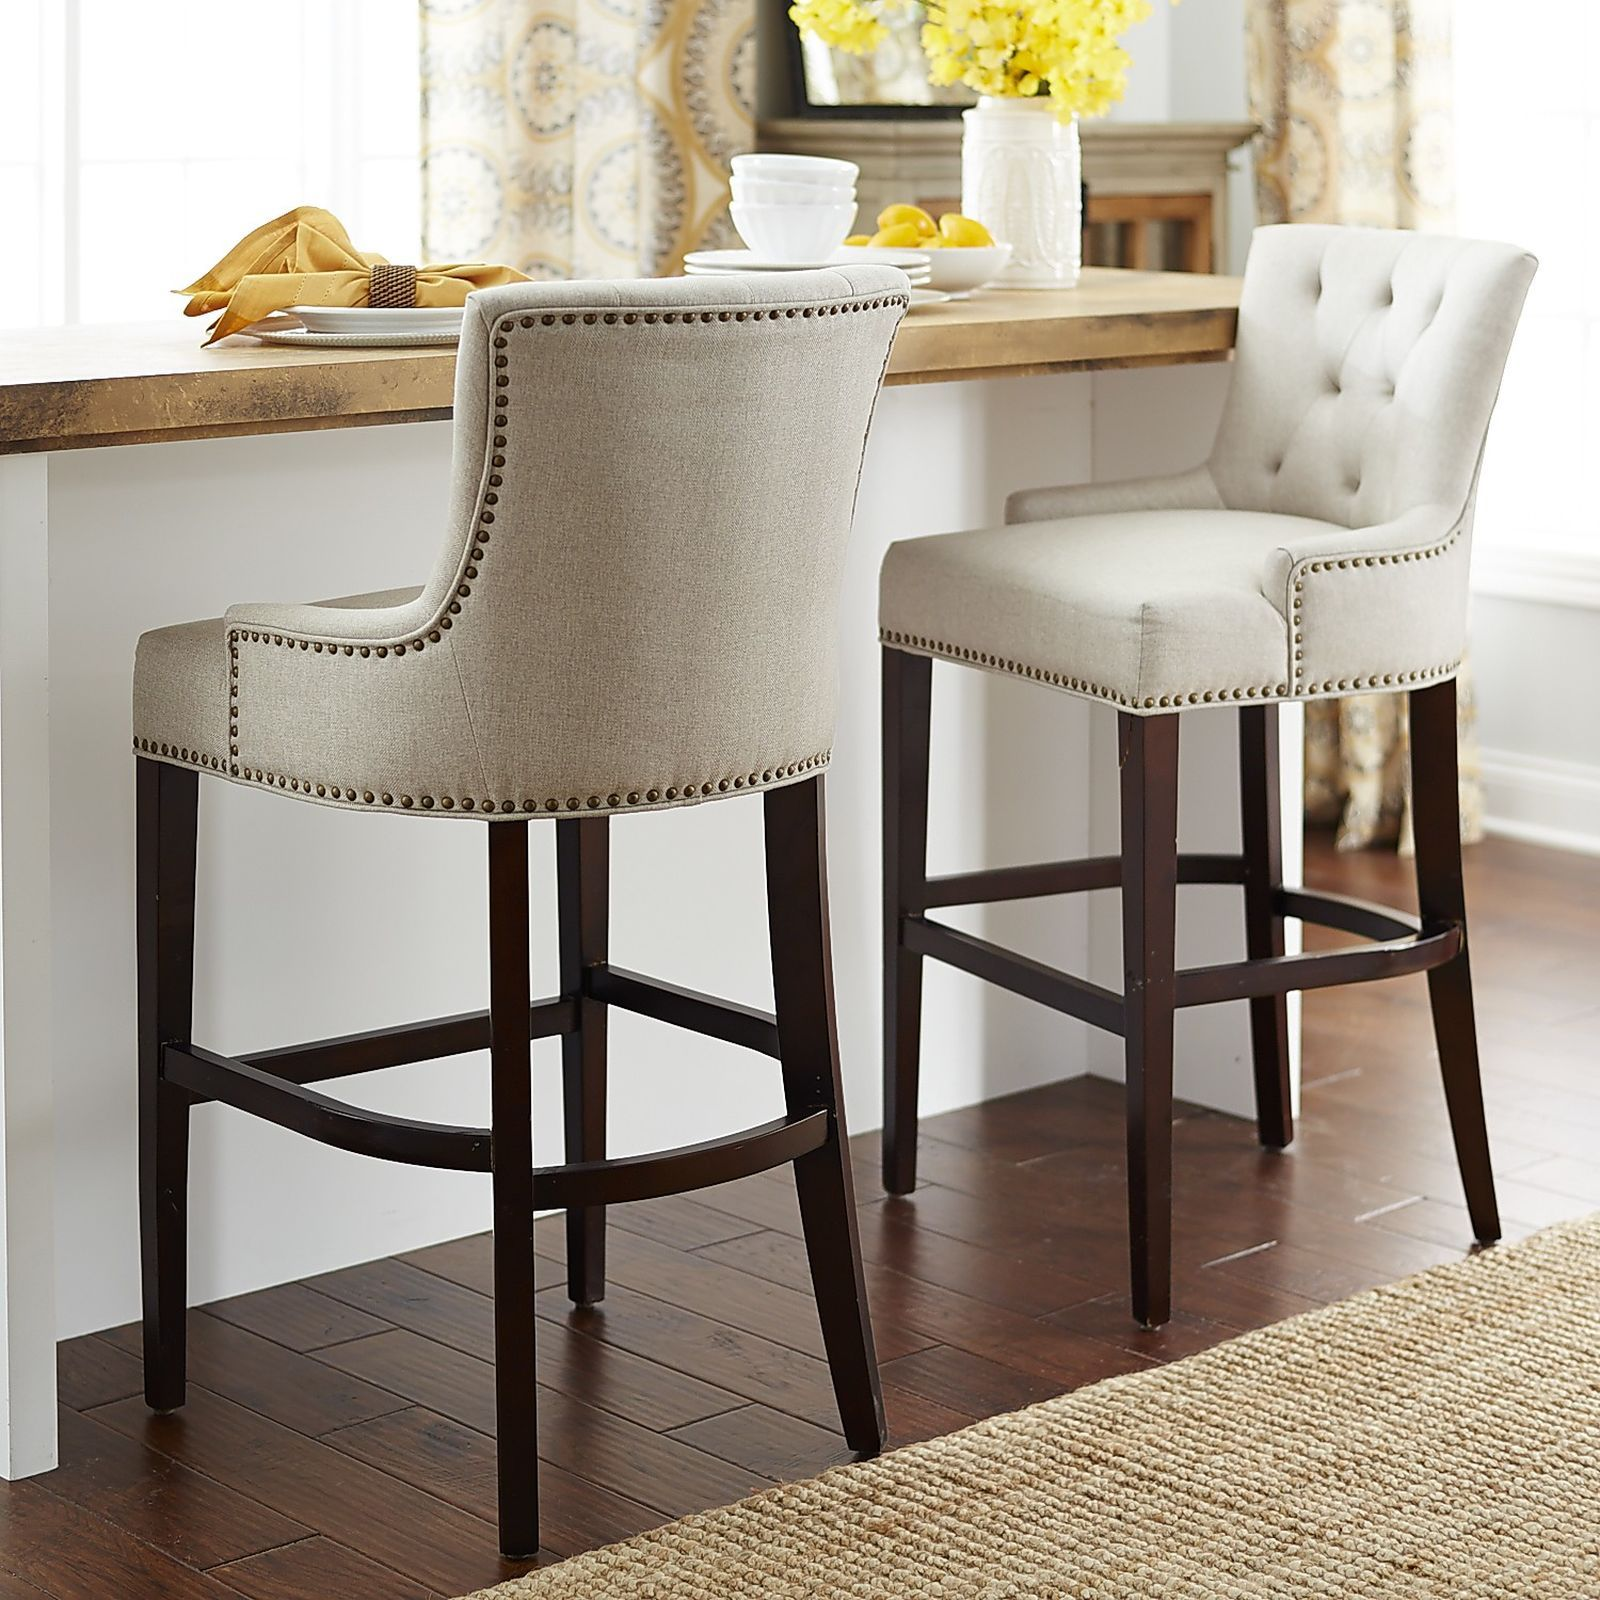 comfortable kitchen chairs Our Ava stools offer a most elegant perch Classic tailoring includes a comfortable contoured back